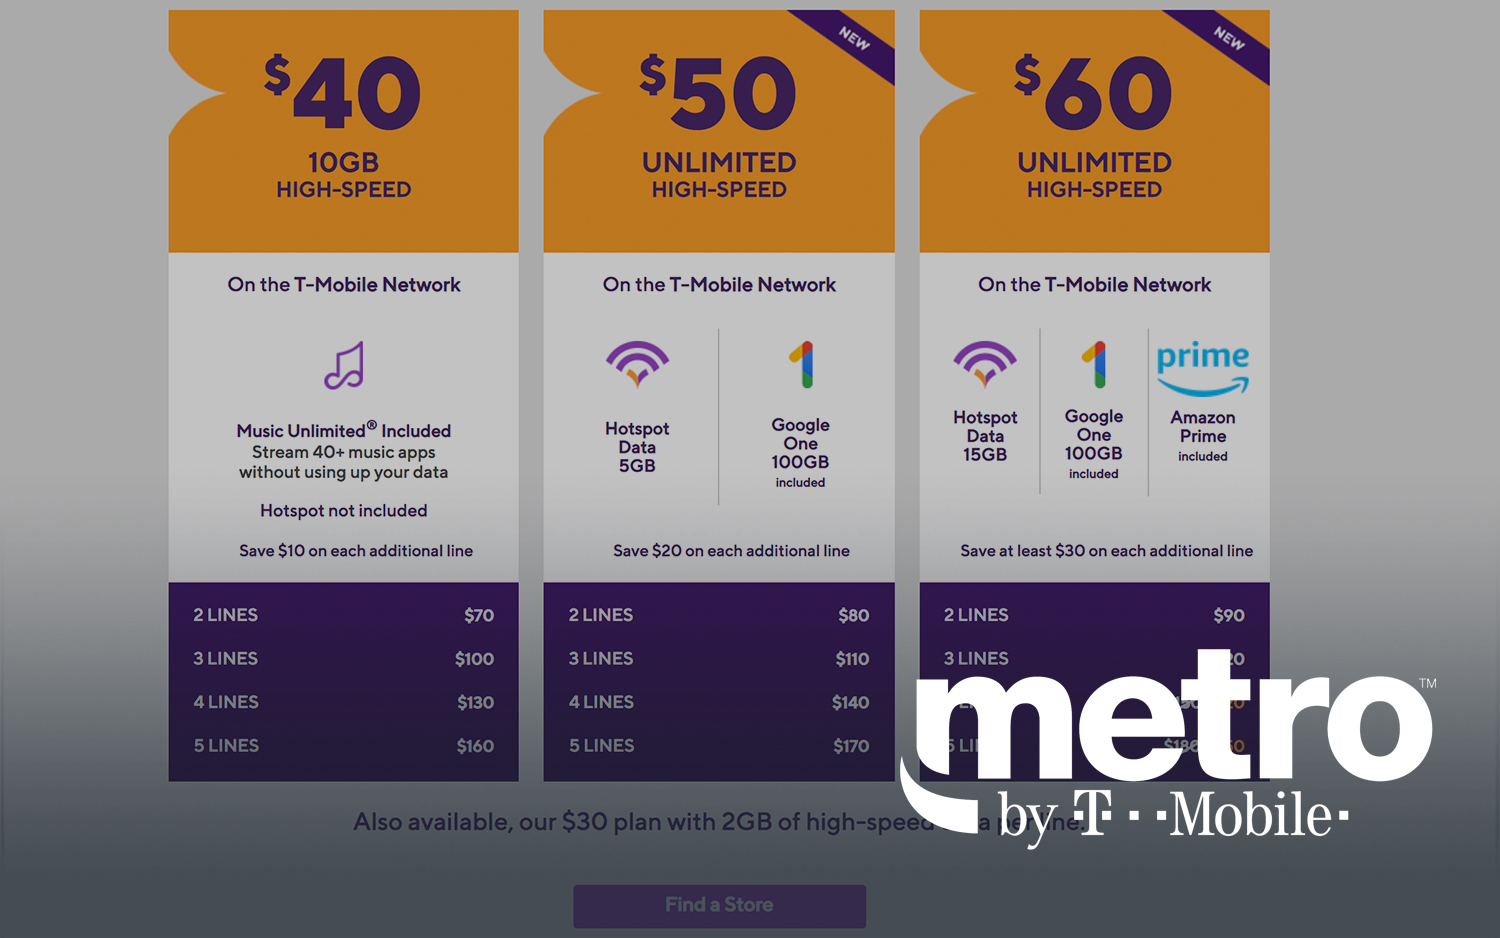 Best Prepaid Phone Plans 2019 - Carrier Reviews and